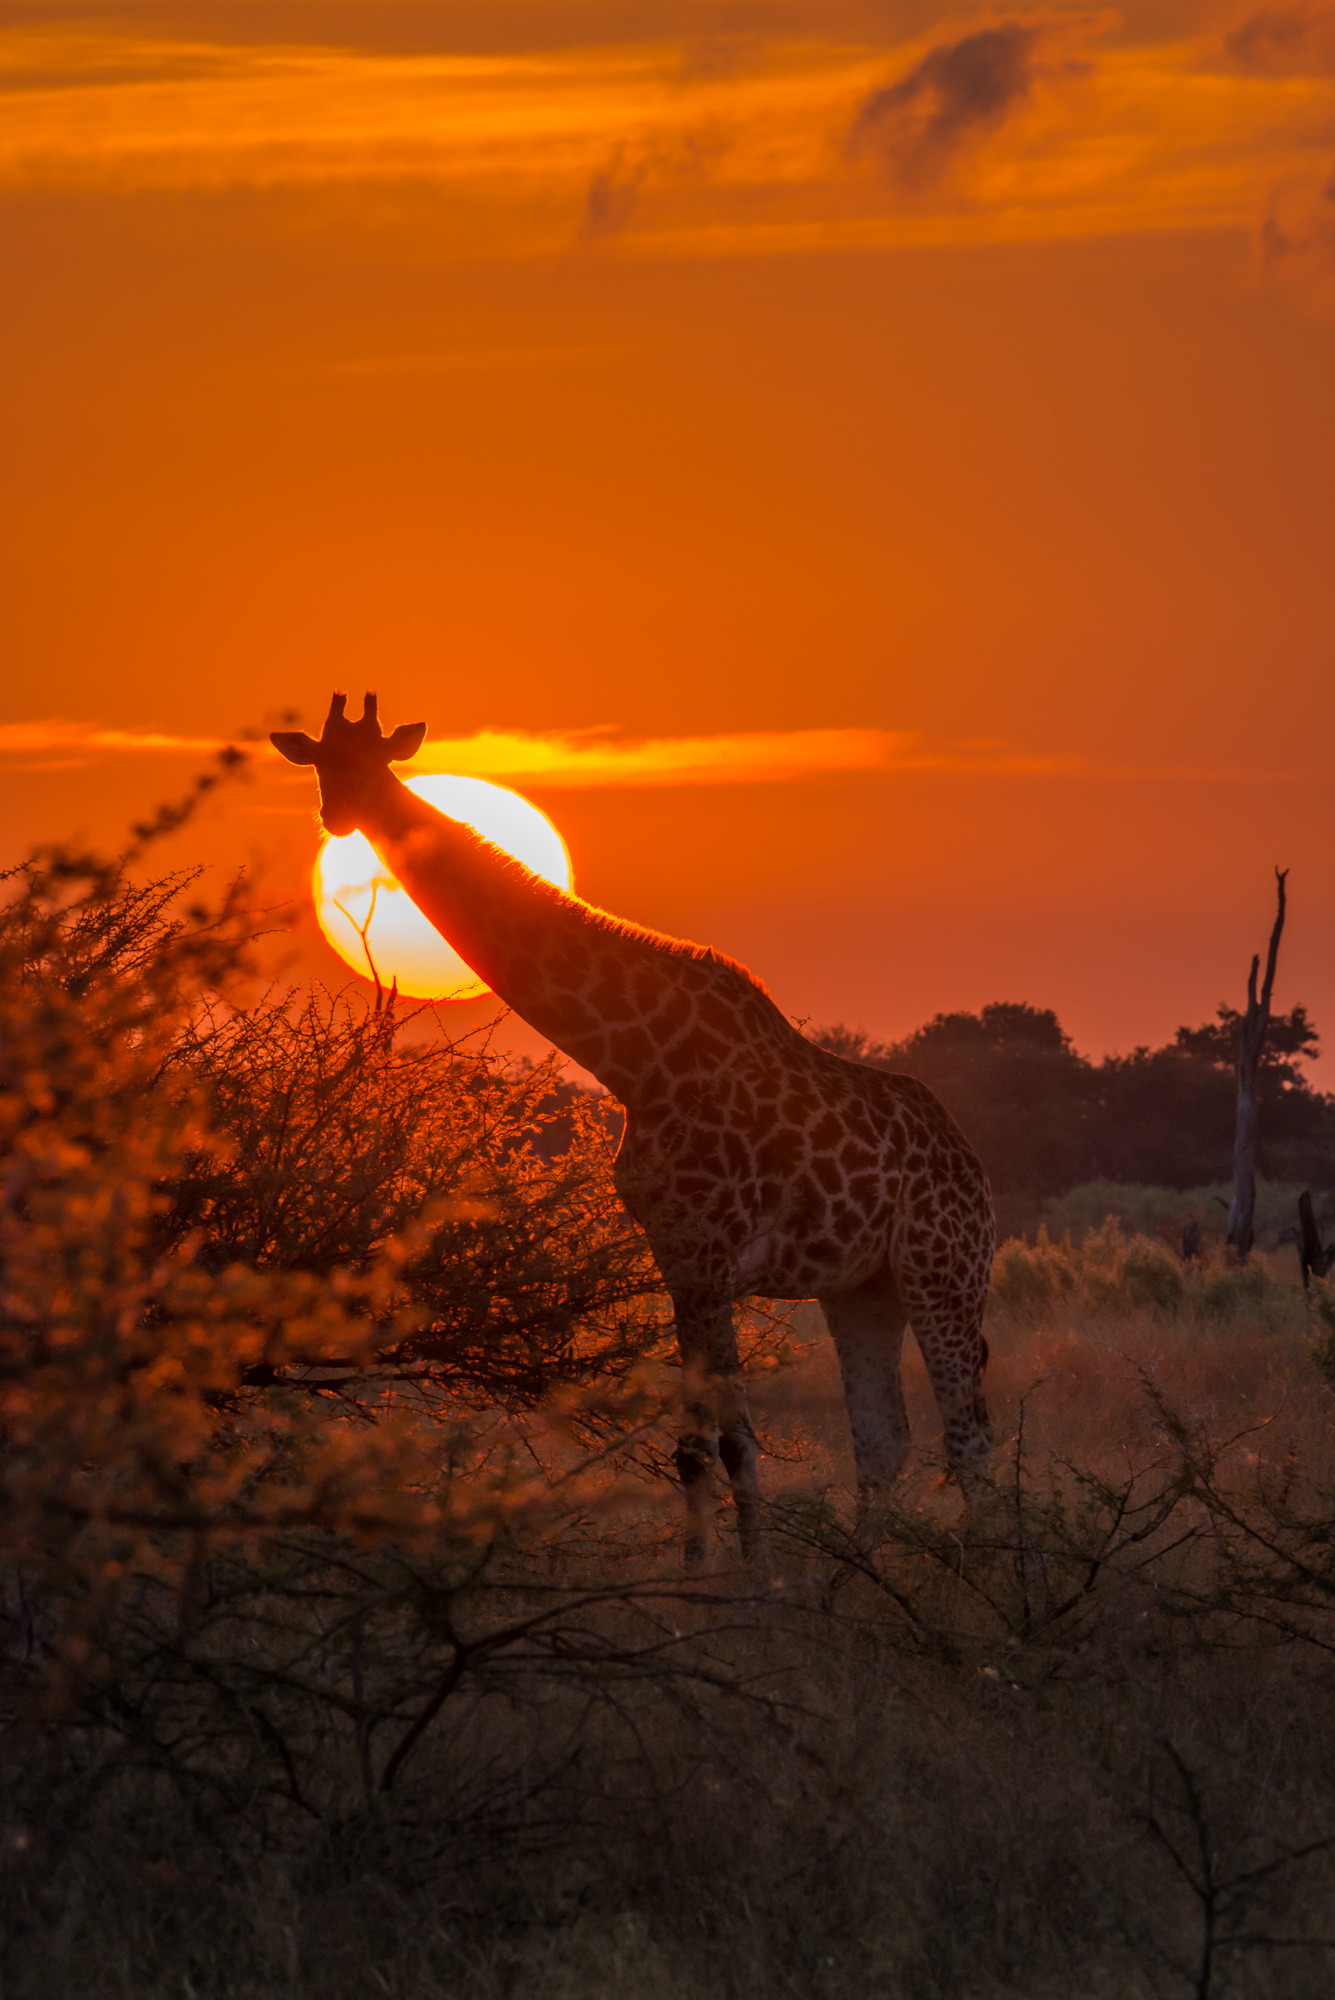 Giraffe and sun at dawn